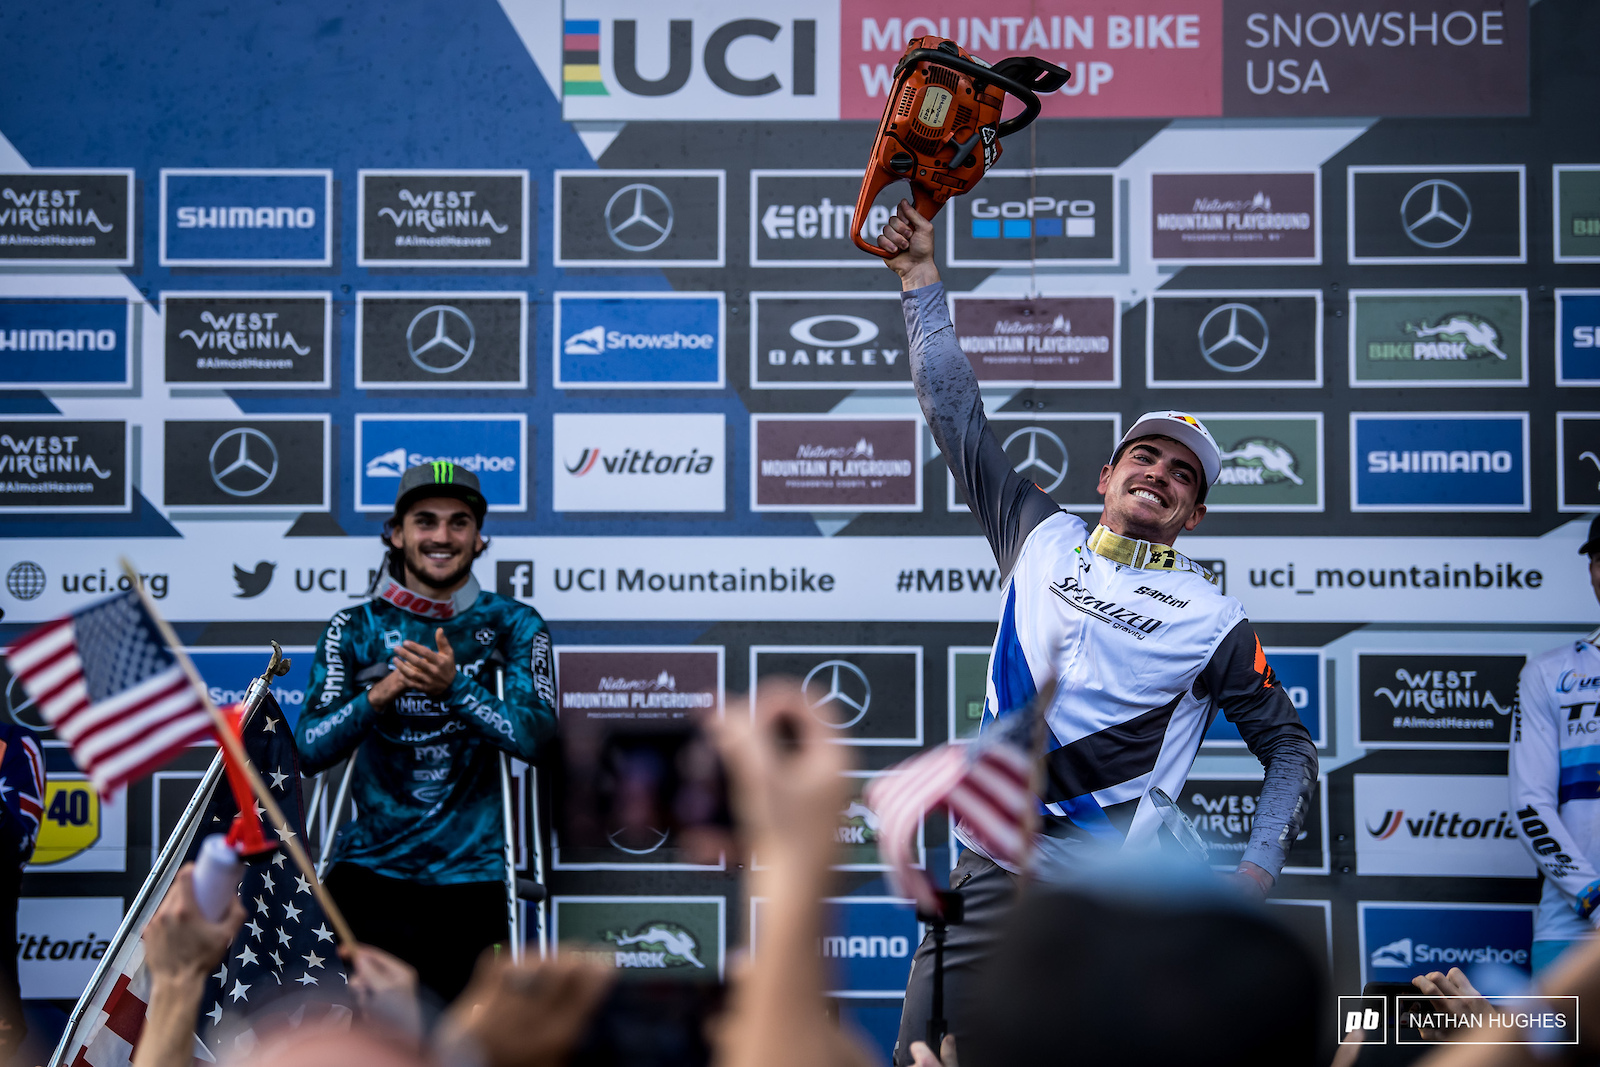 Bruni claims his second overall WC title.